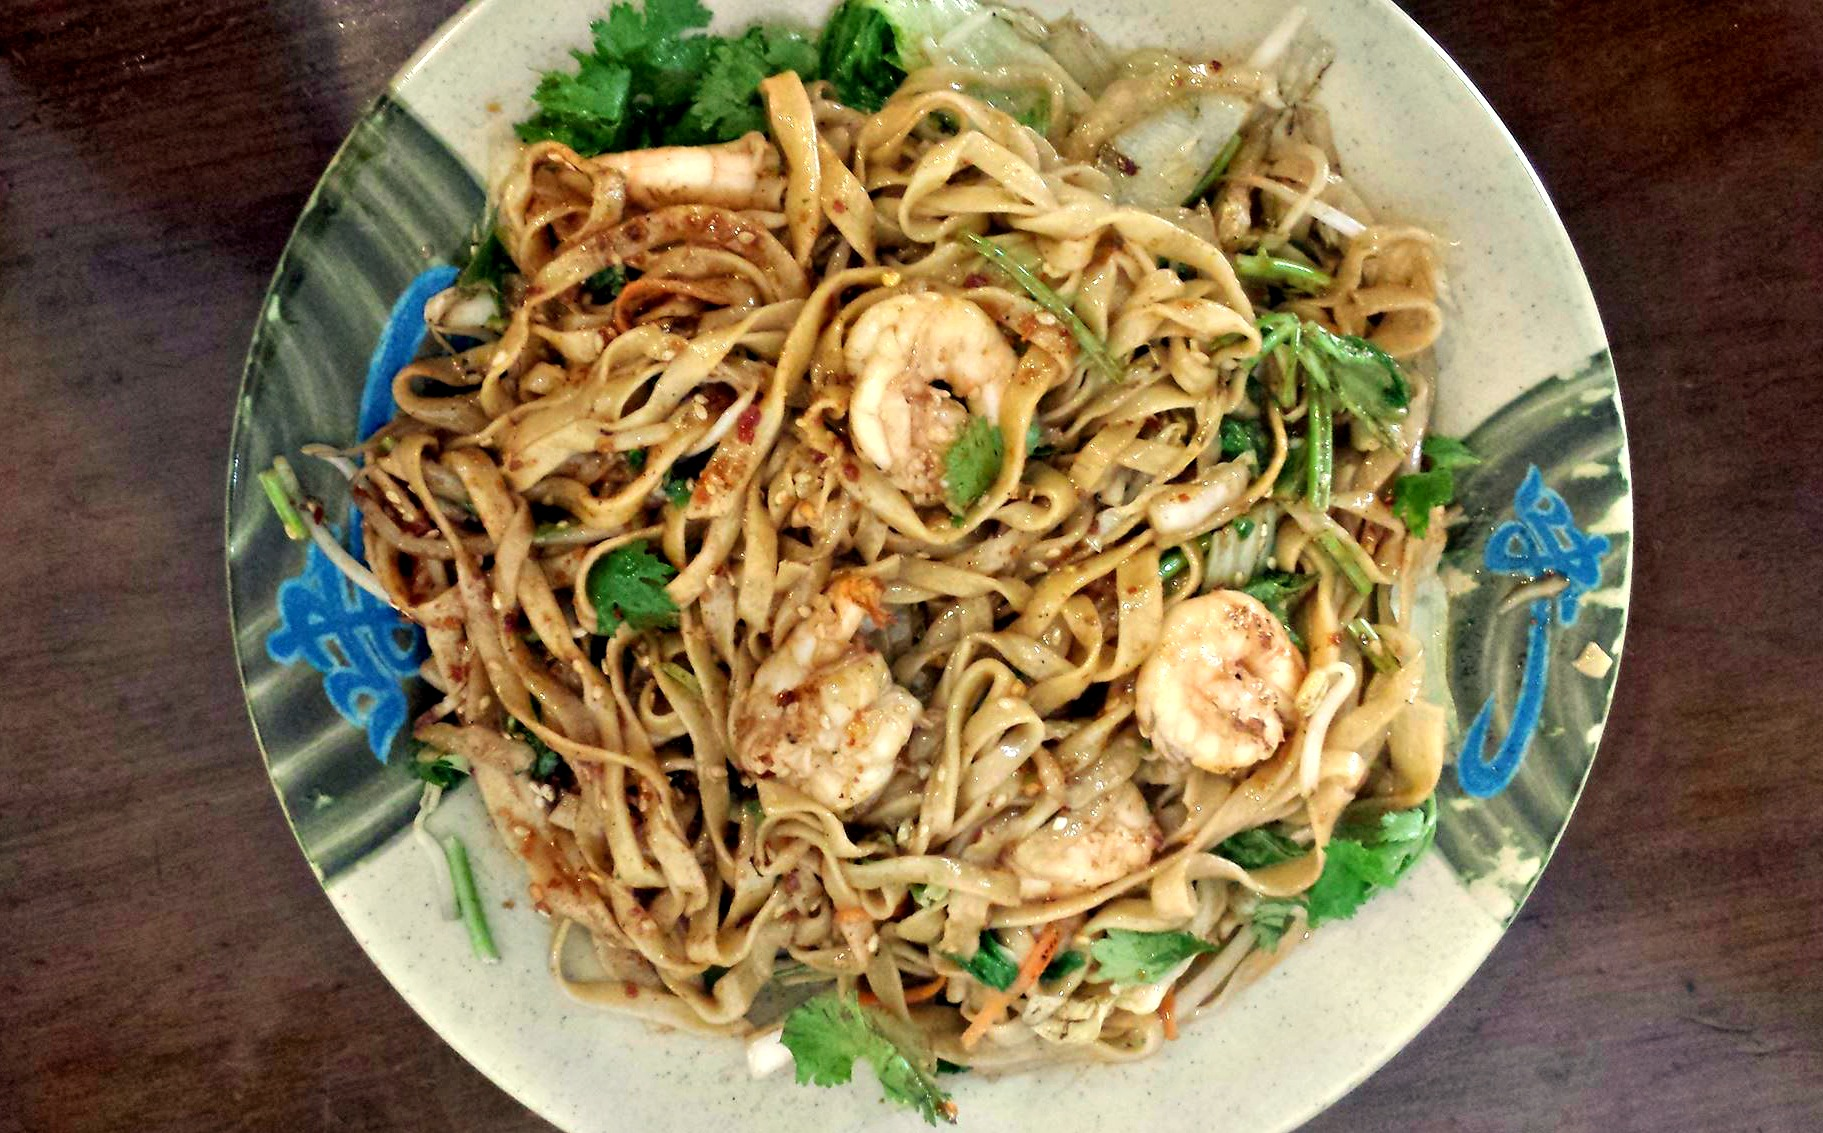 Pan Fried med Wide Noodles with Shrimp